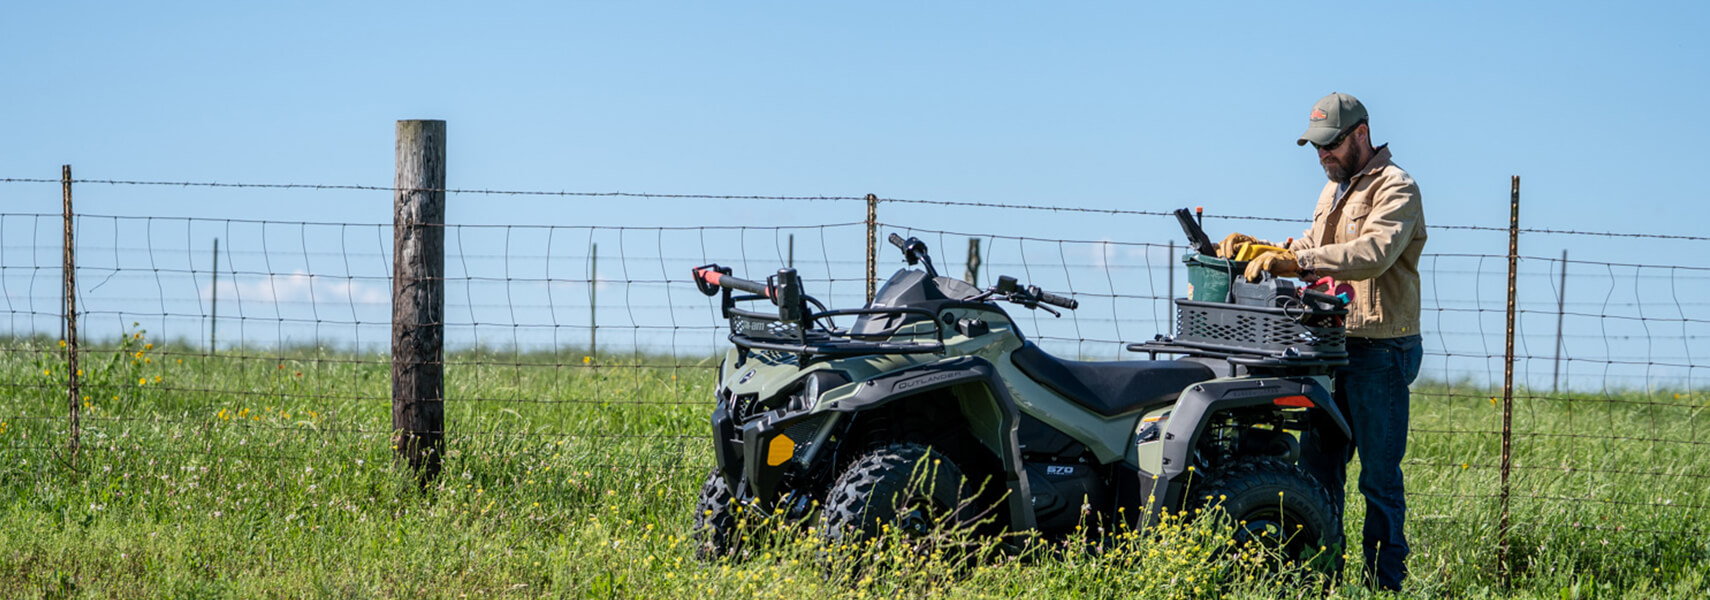 Can-Am ATV - 2020 OUTLANDER 450 / 570 T